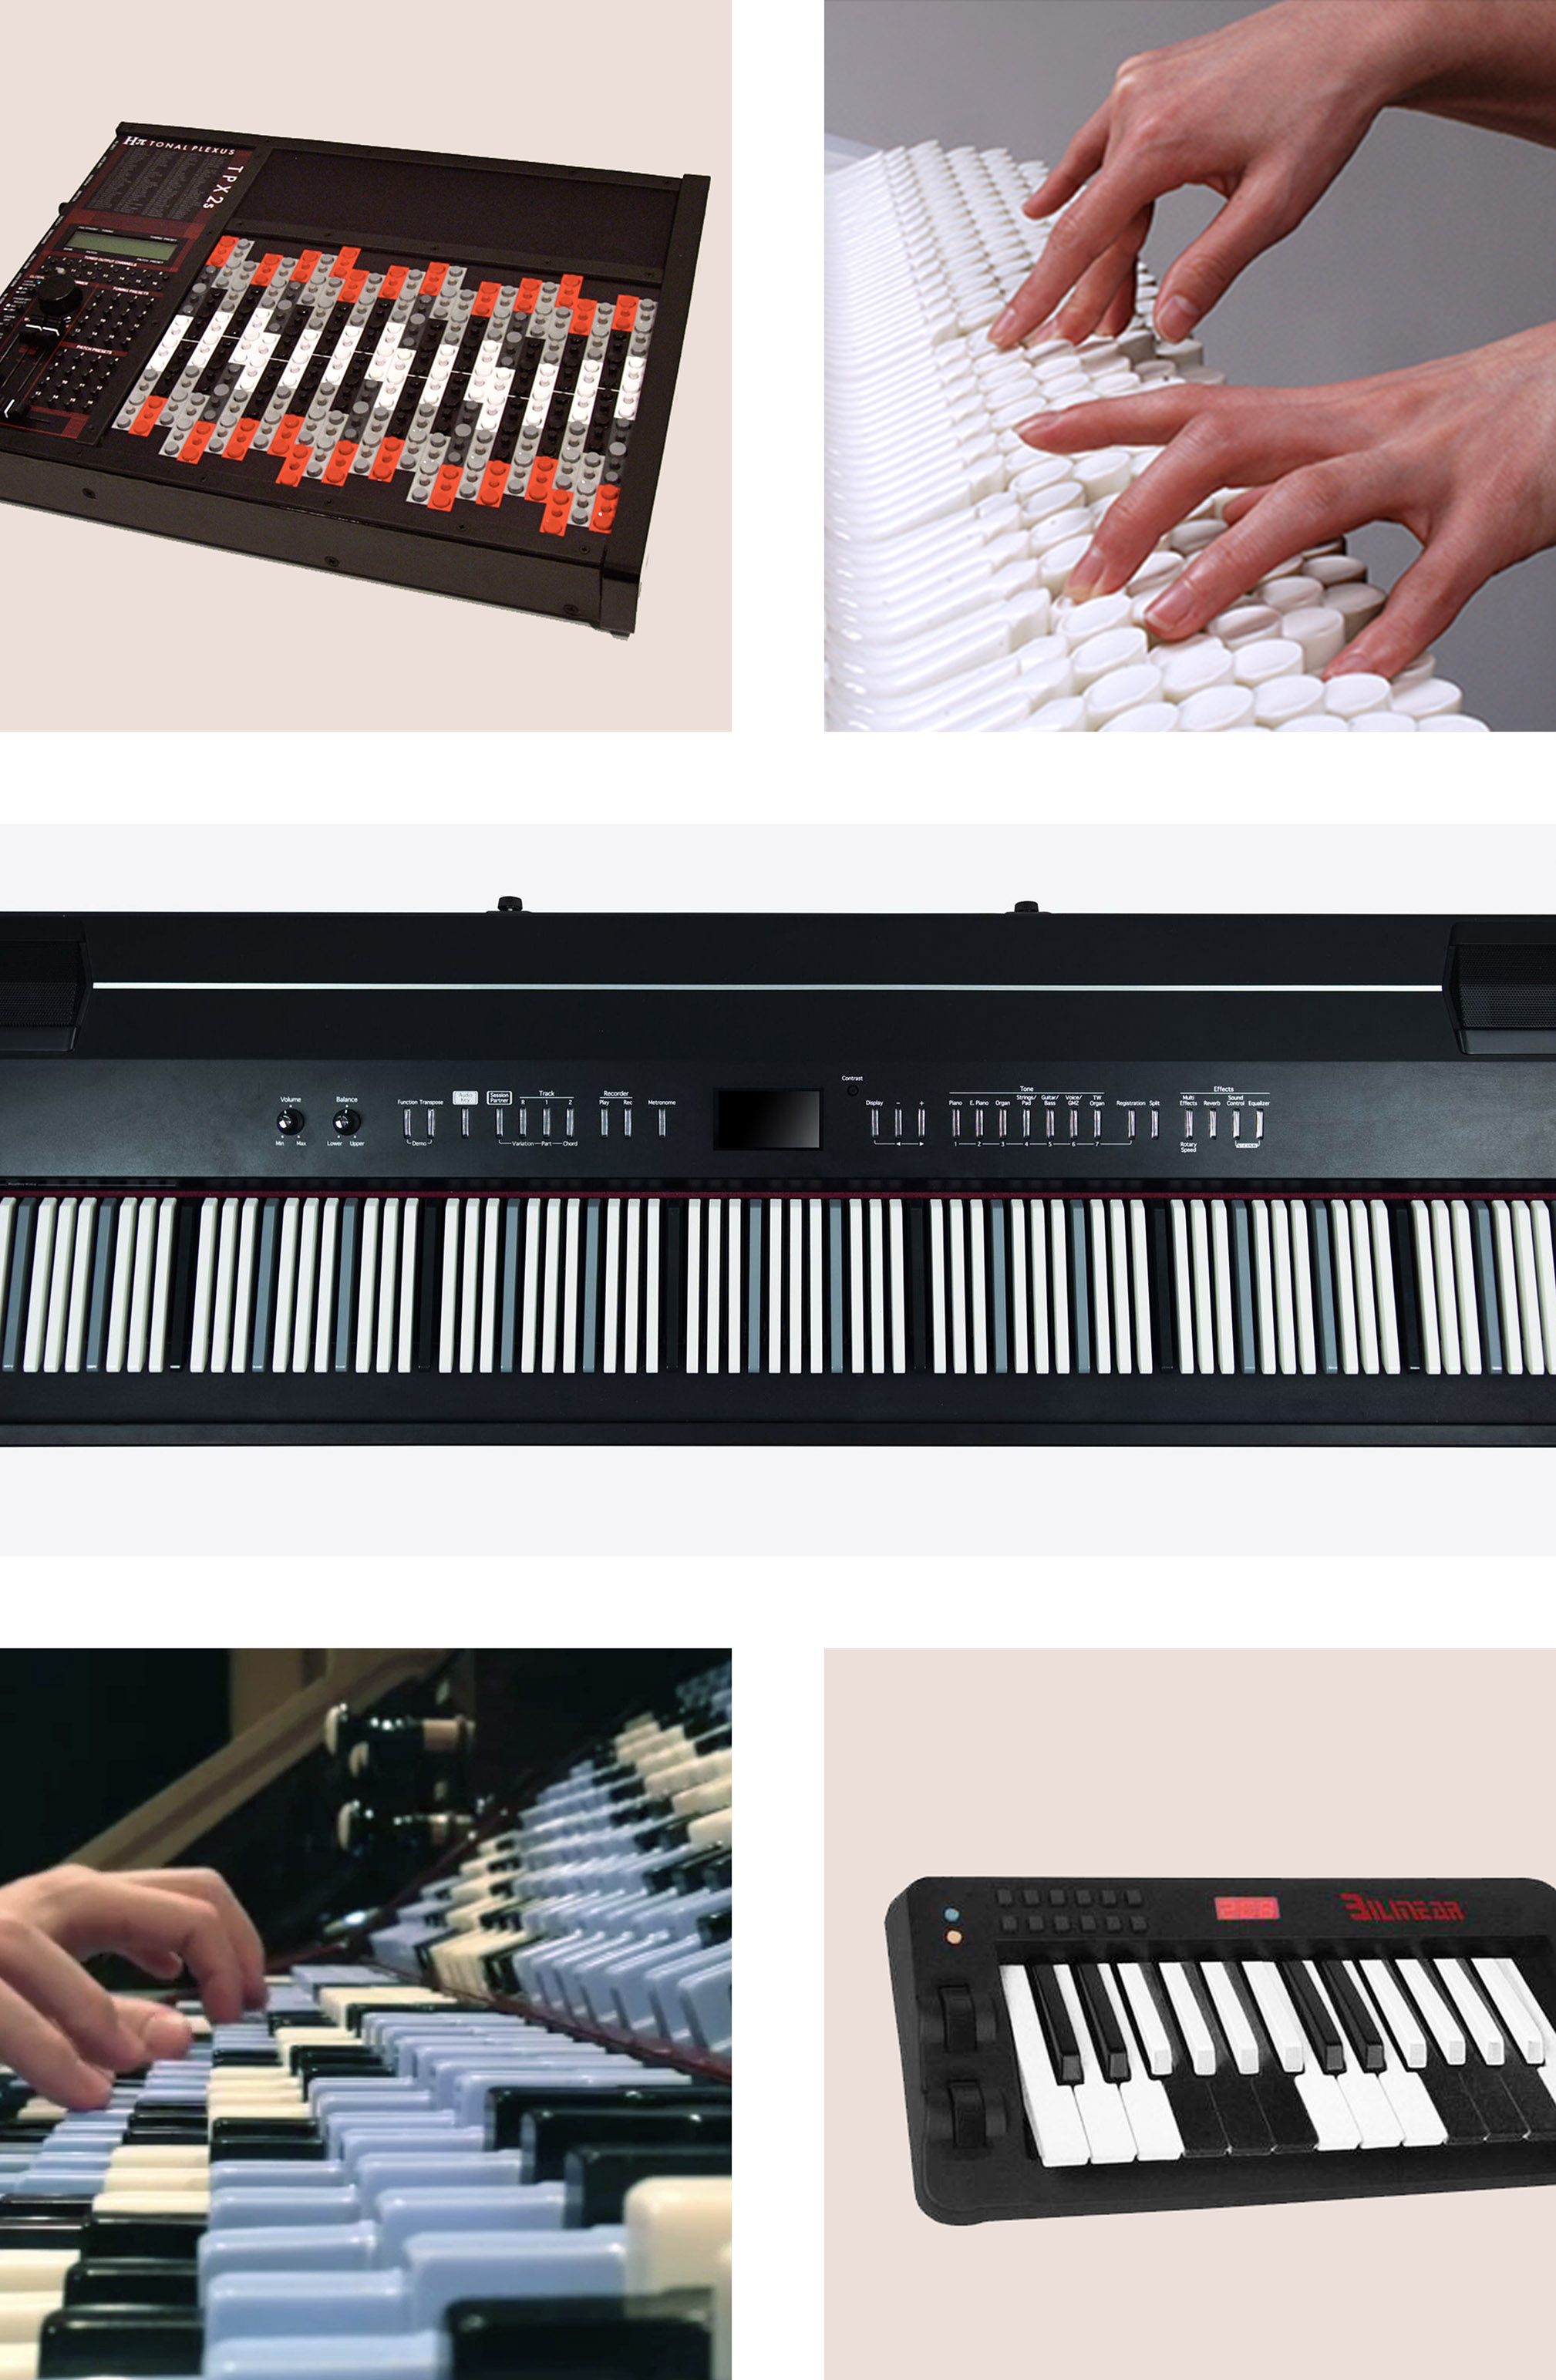 From top left: Tonal Plexus, Chromatone, Dodeka, Fokker Organ, and Bilinear Chromatic